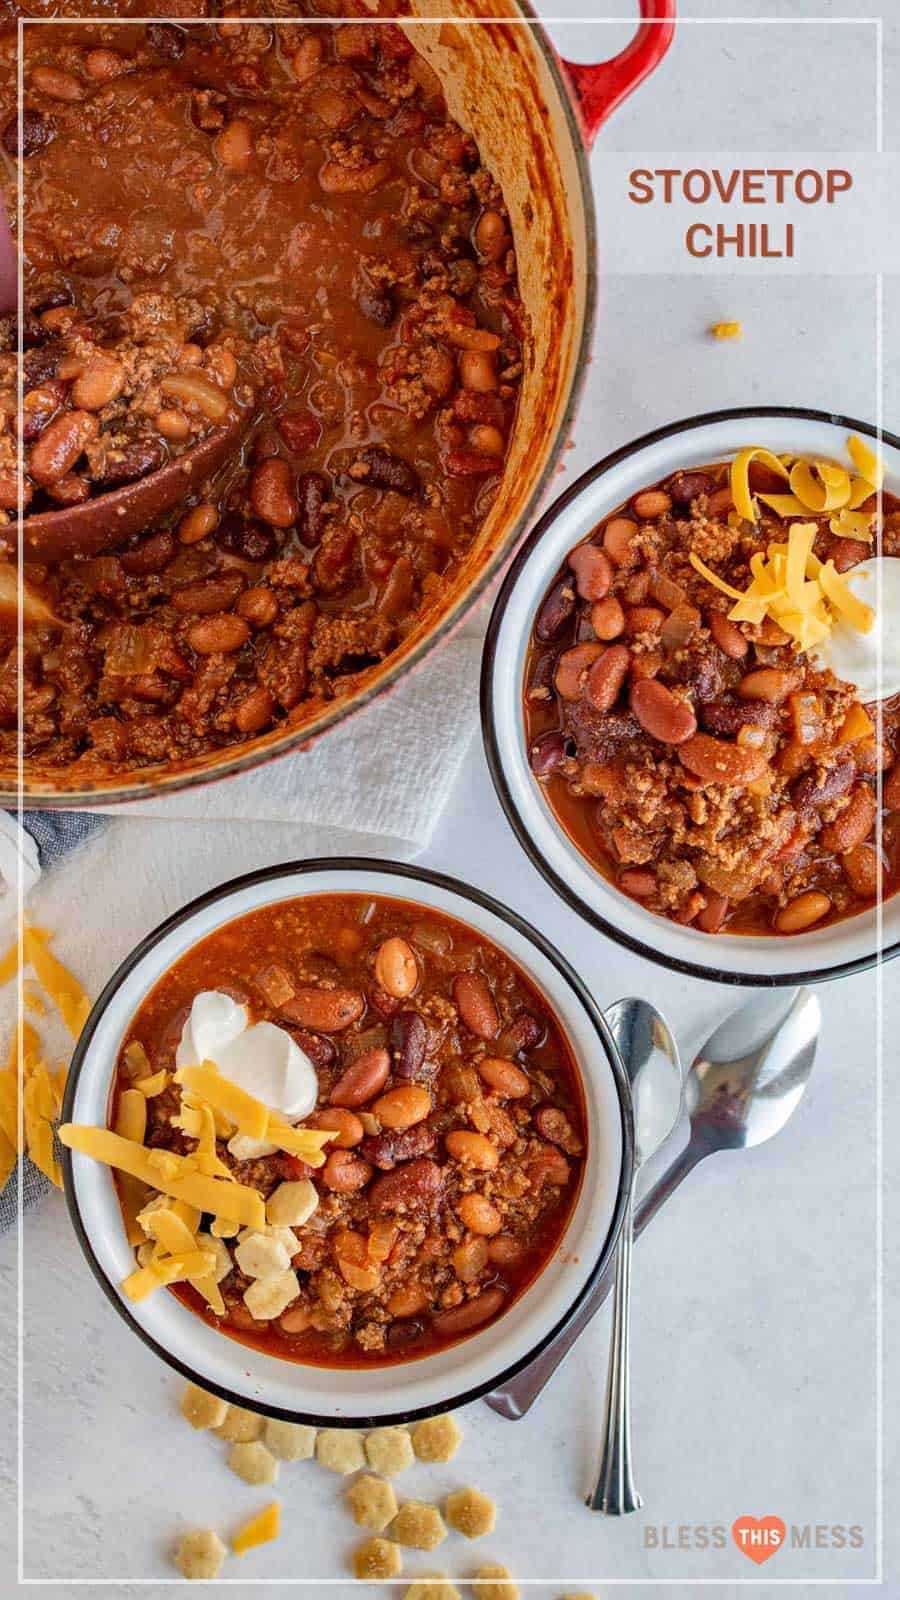 beef chili served and ready to eat